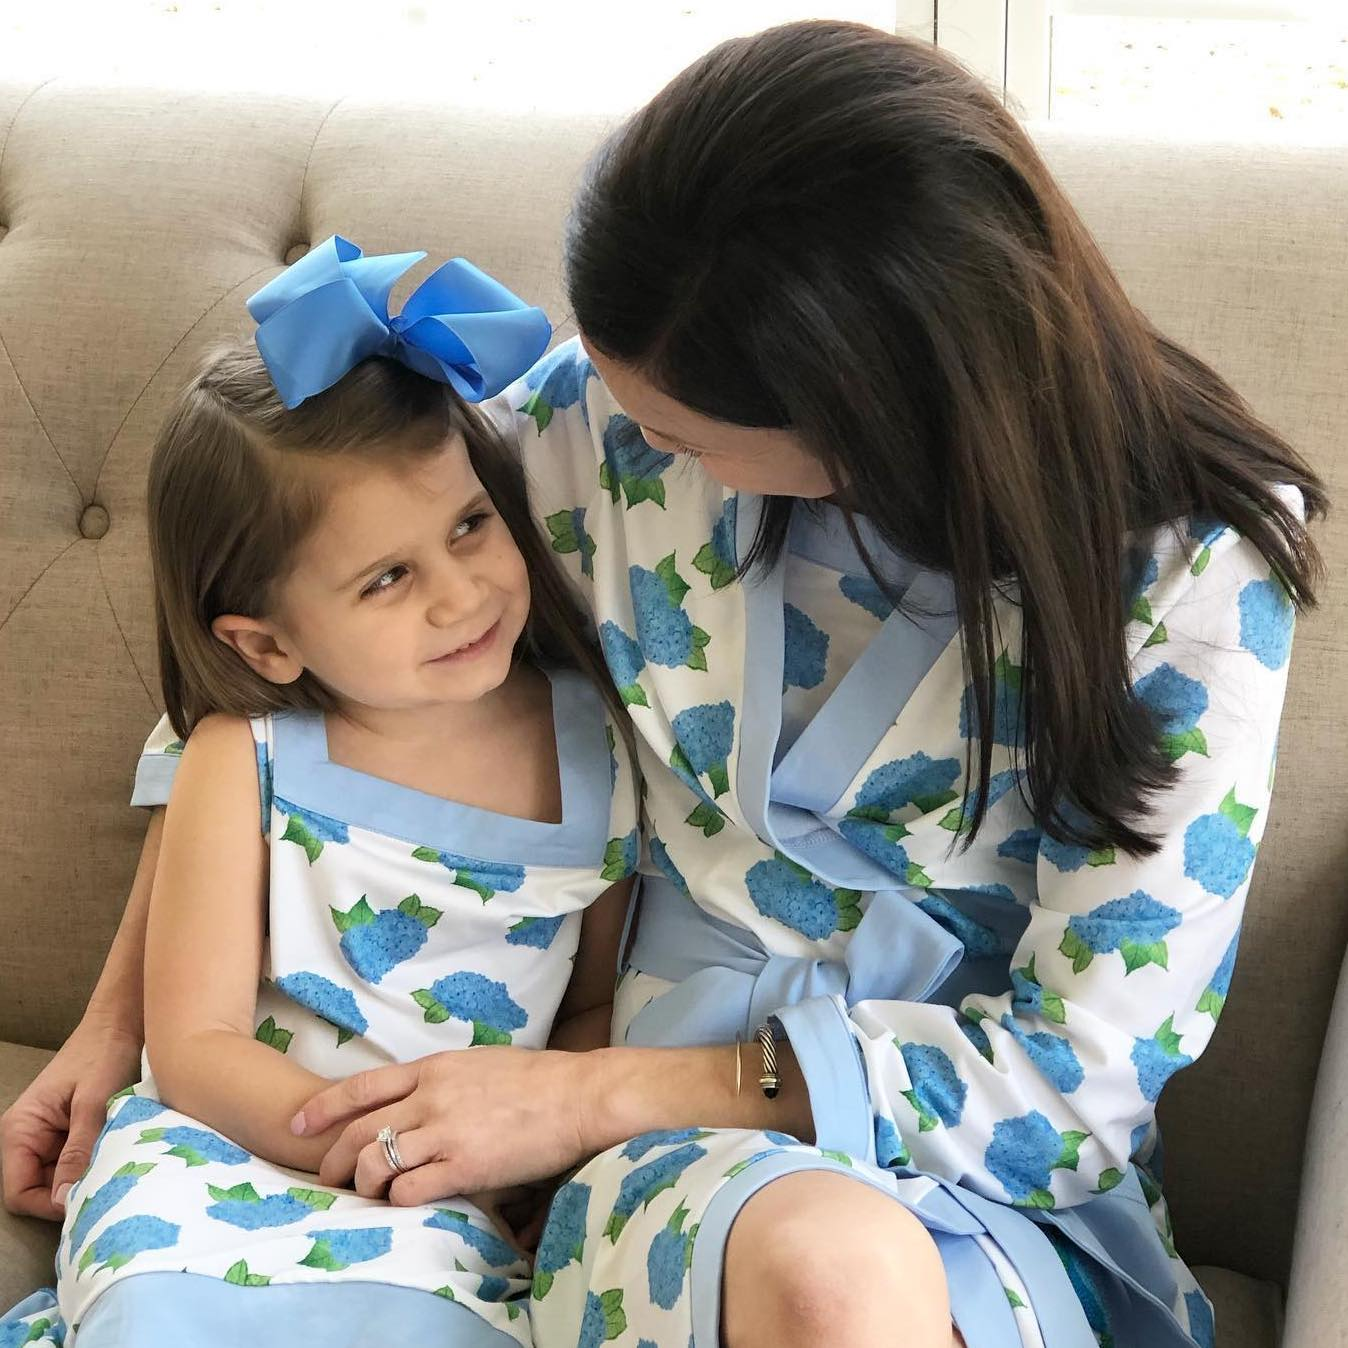 A mother and her daughter in matching Bella Bean Shop outfits